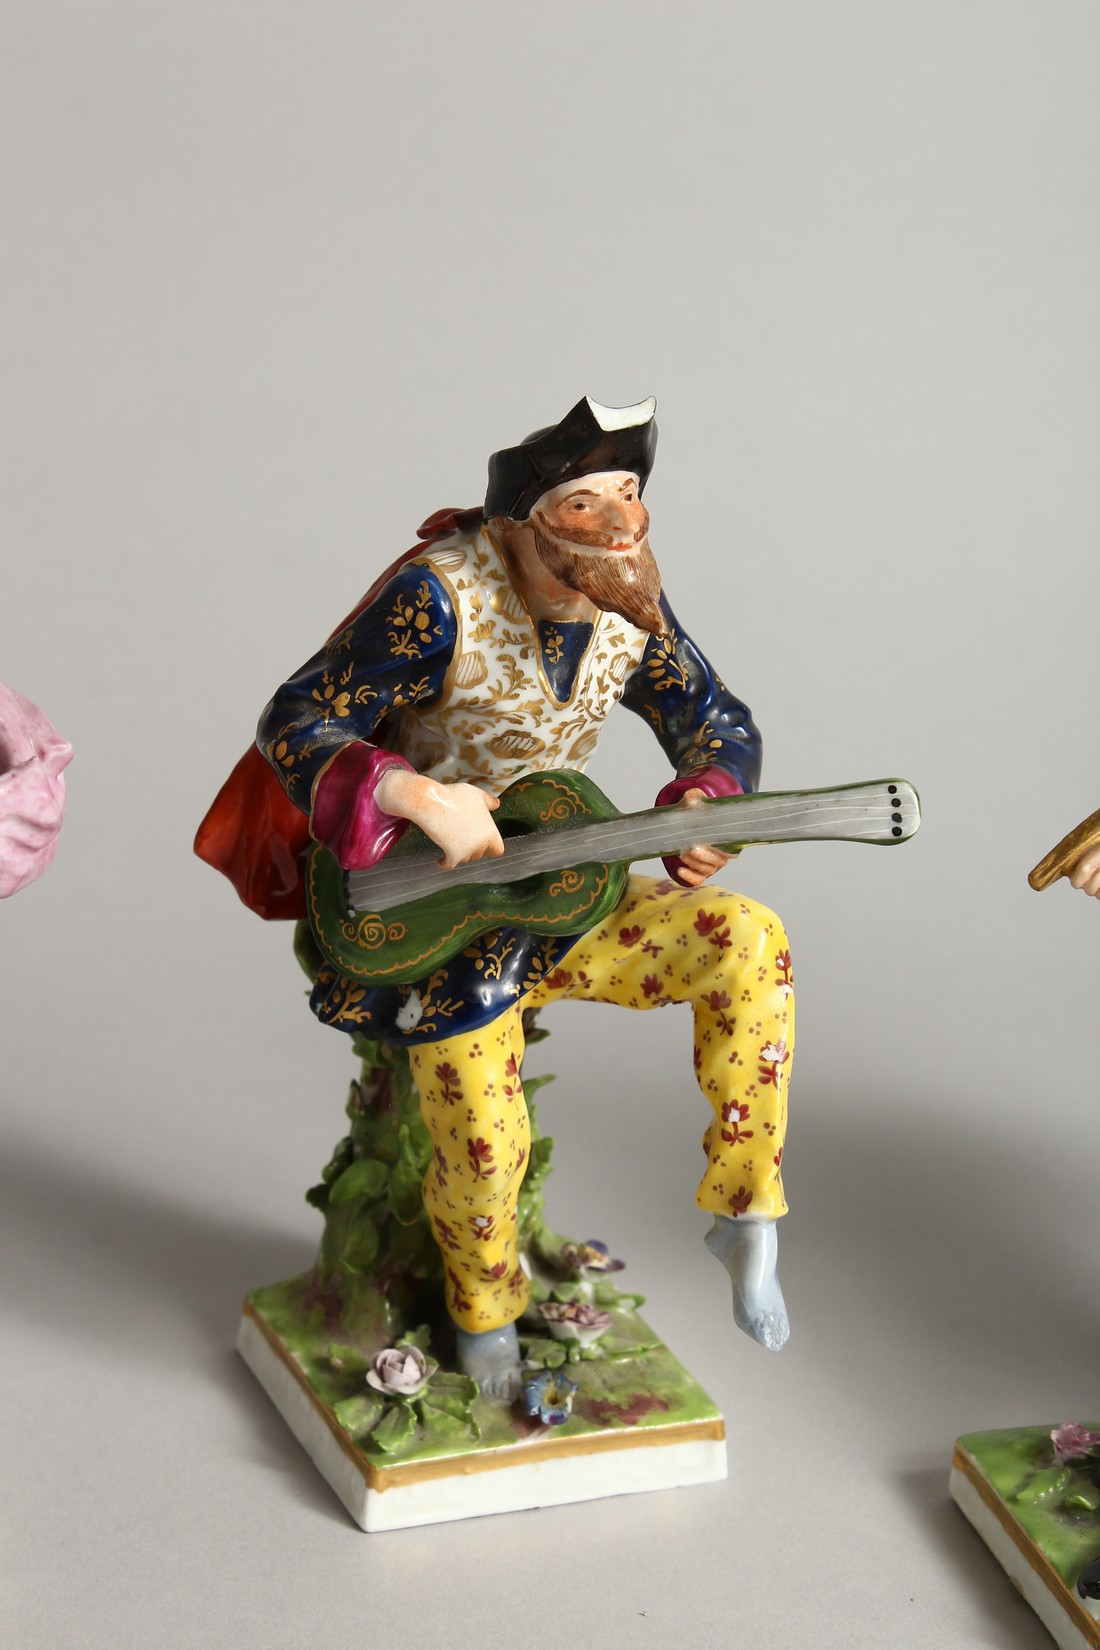 """A SET OF FOUR """"COMMEDIA DELL ARTE """" STYLE FIGURES, LATE 19TH CENTURY/EARLY 20TH CENTURY, possibly by - Image 4 of 9"""